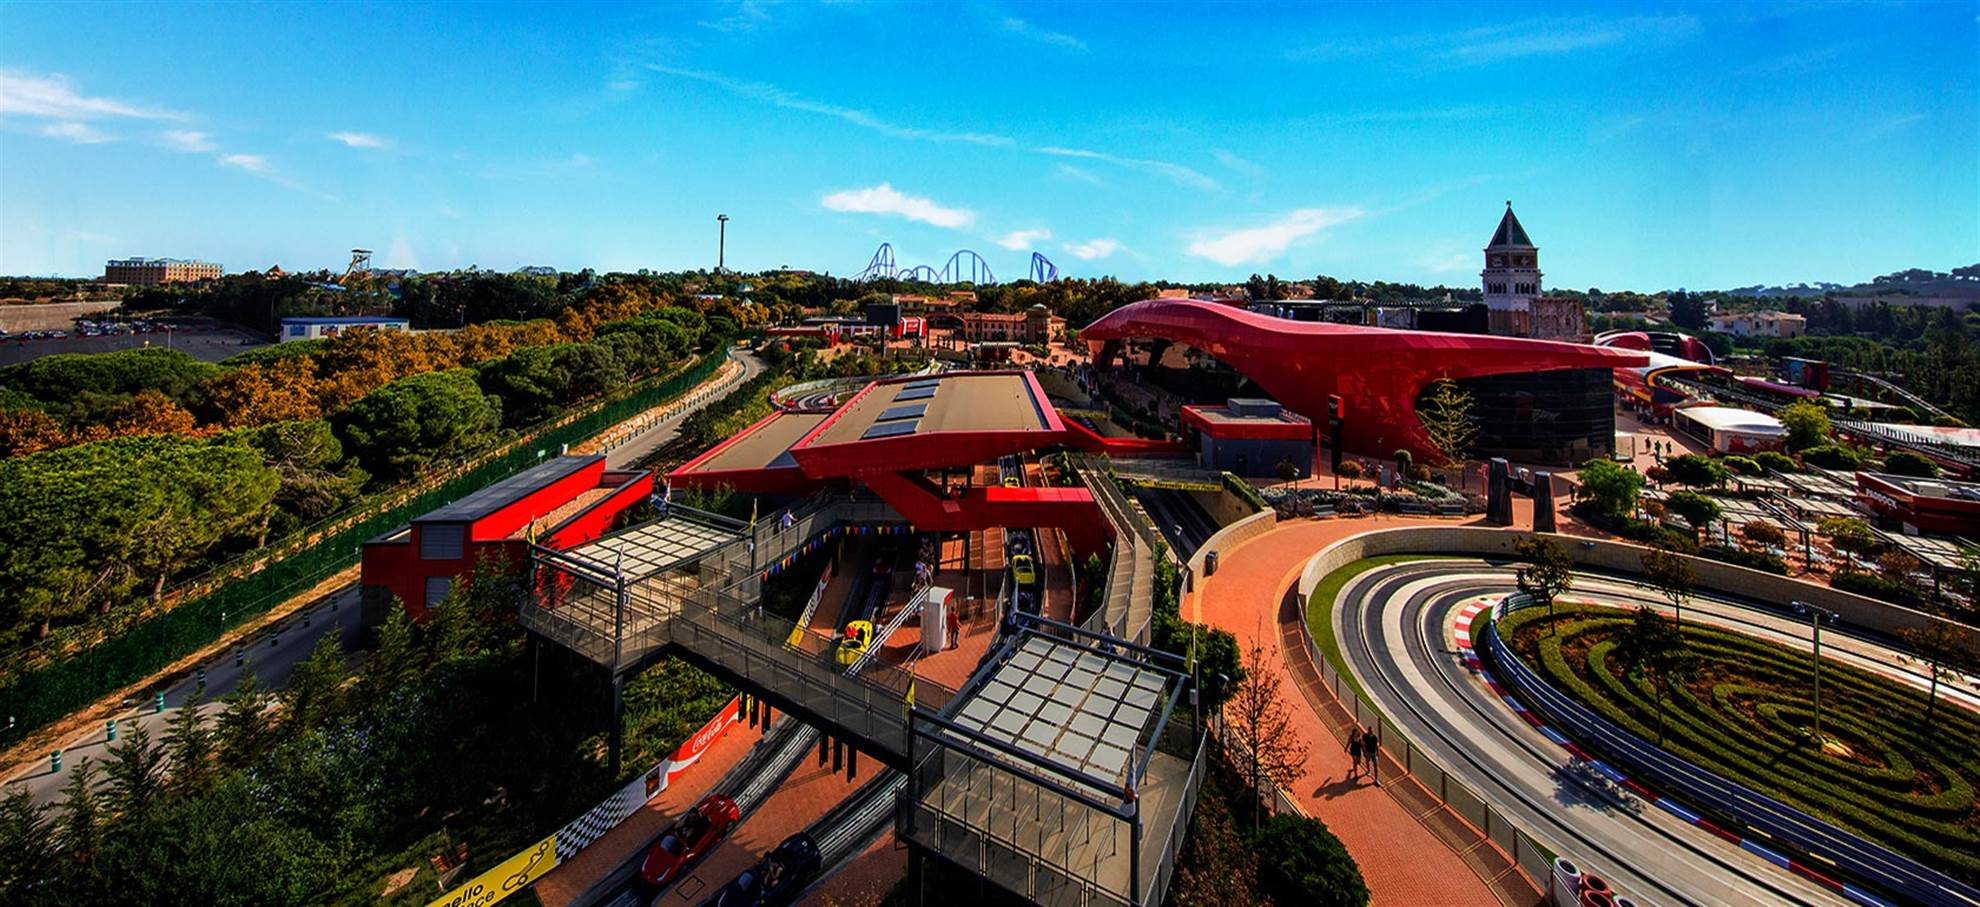 Ferrari Land + Train